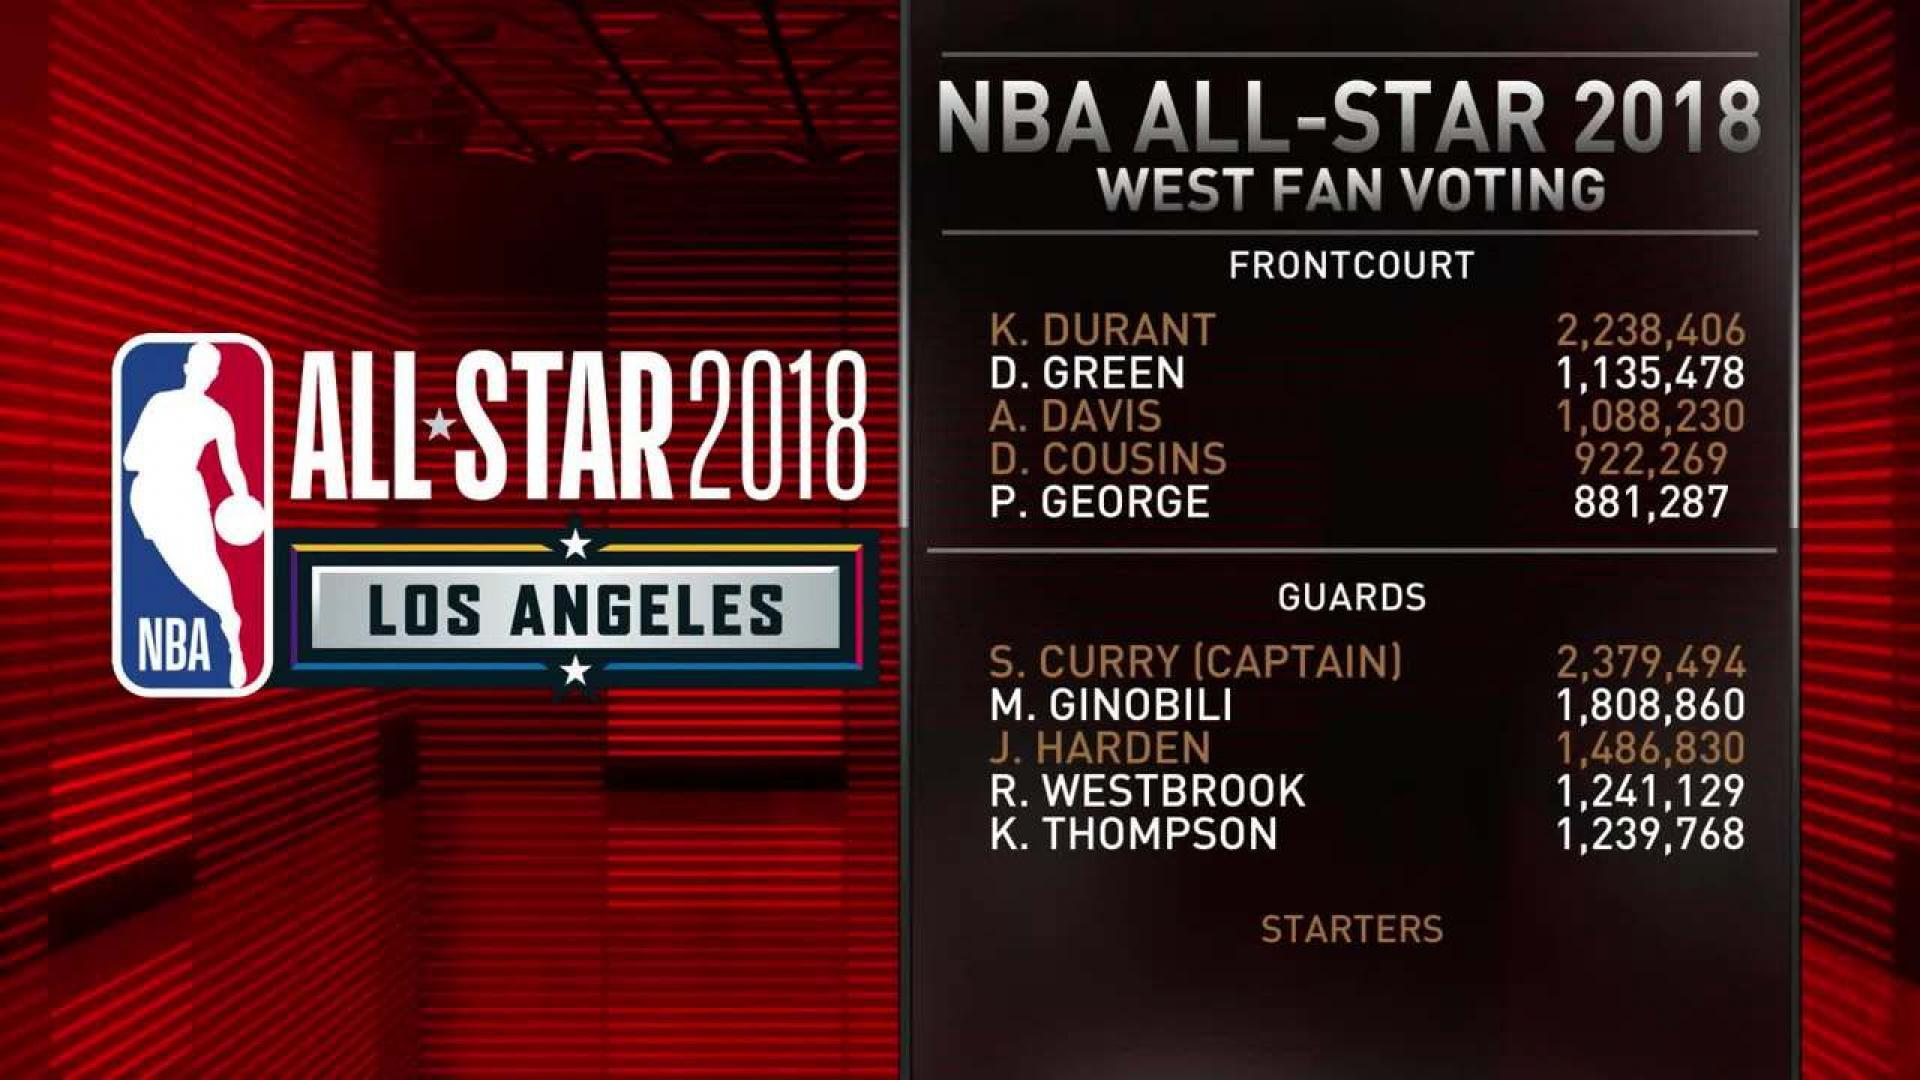 6:59PlayInside The NBA's experts breakdown the Western Conference All Star starters